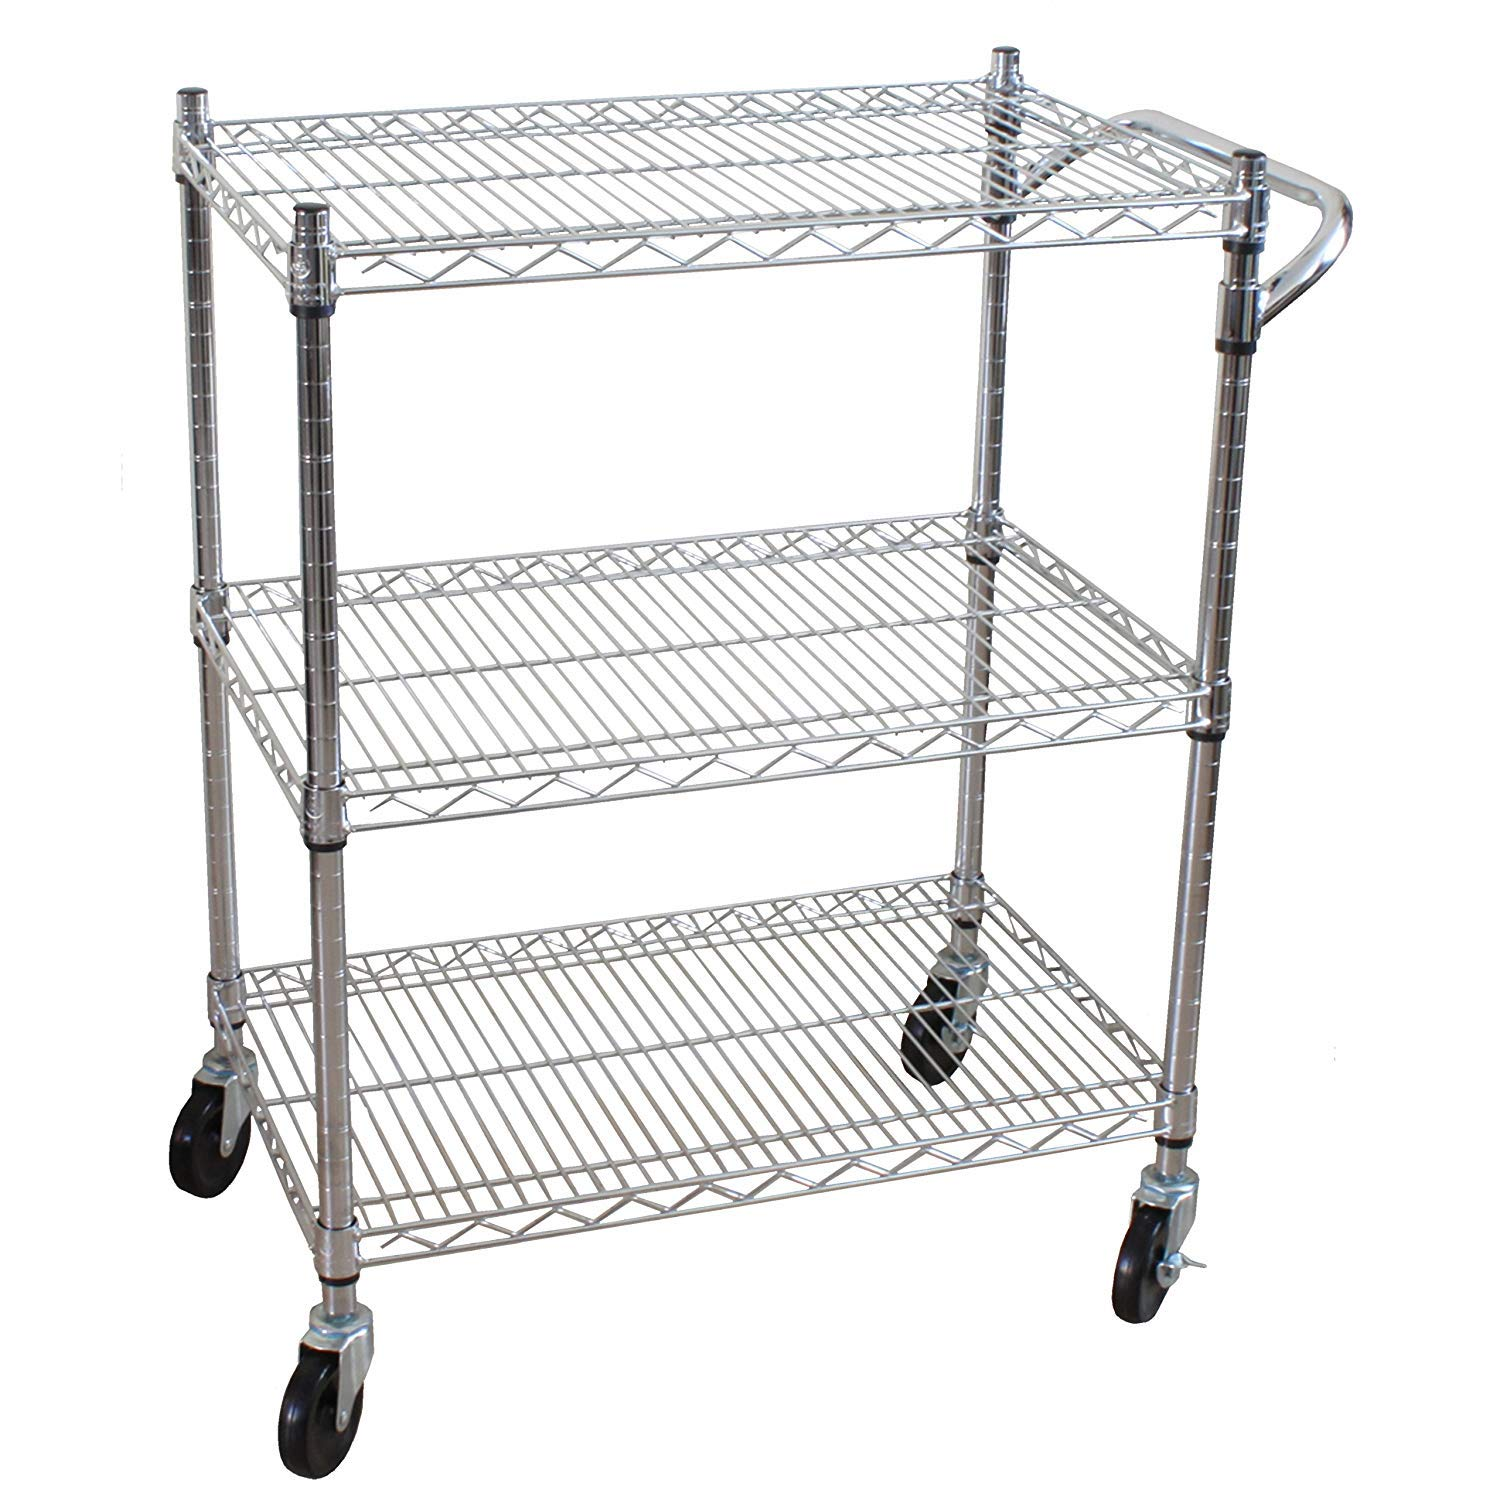 Oceanstar 3-Tier Heavy Duty All-Purpose Utility Cart Chrome (Pack of 1)